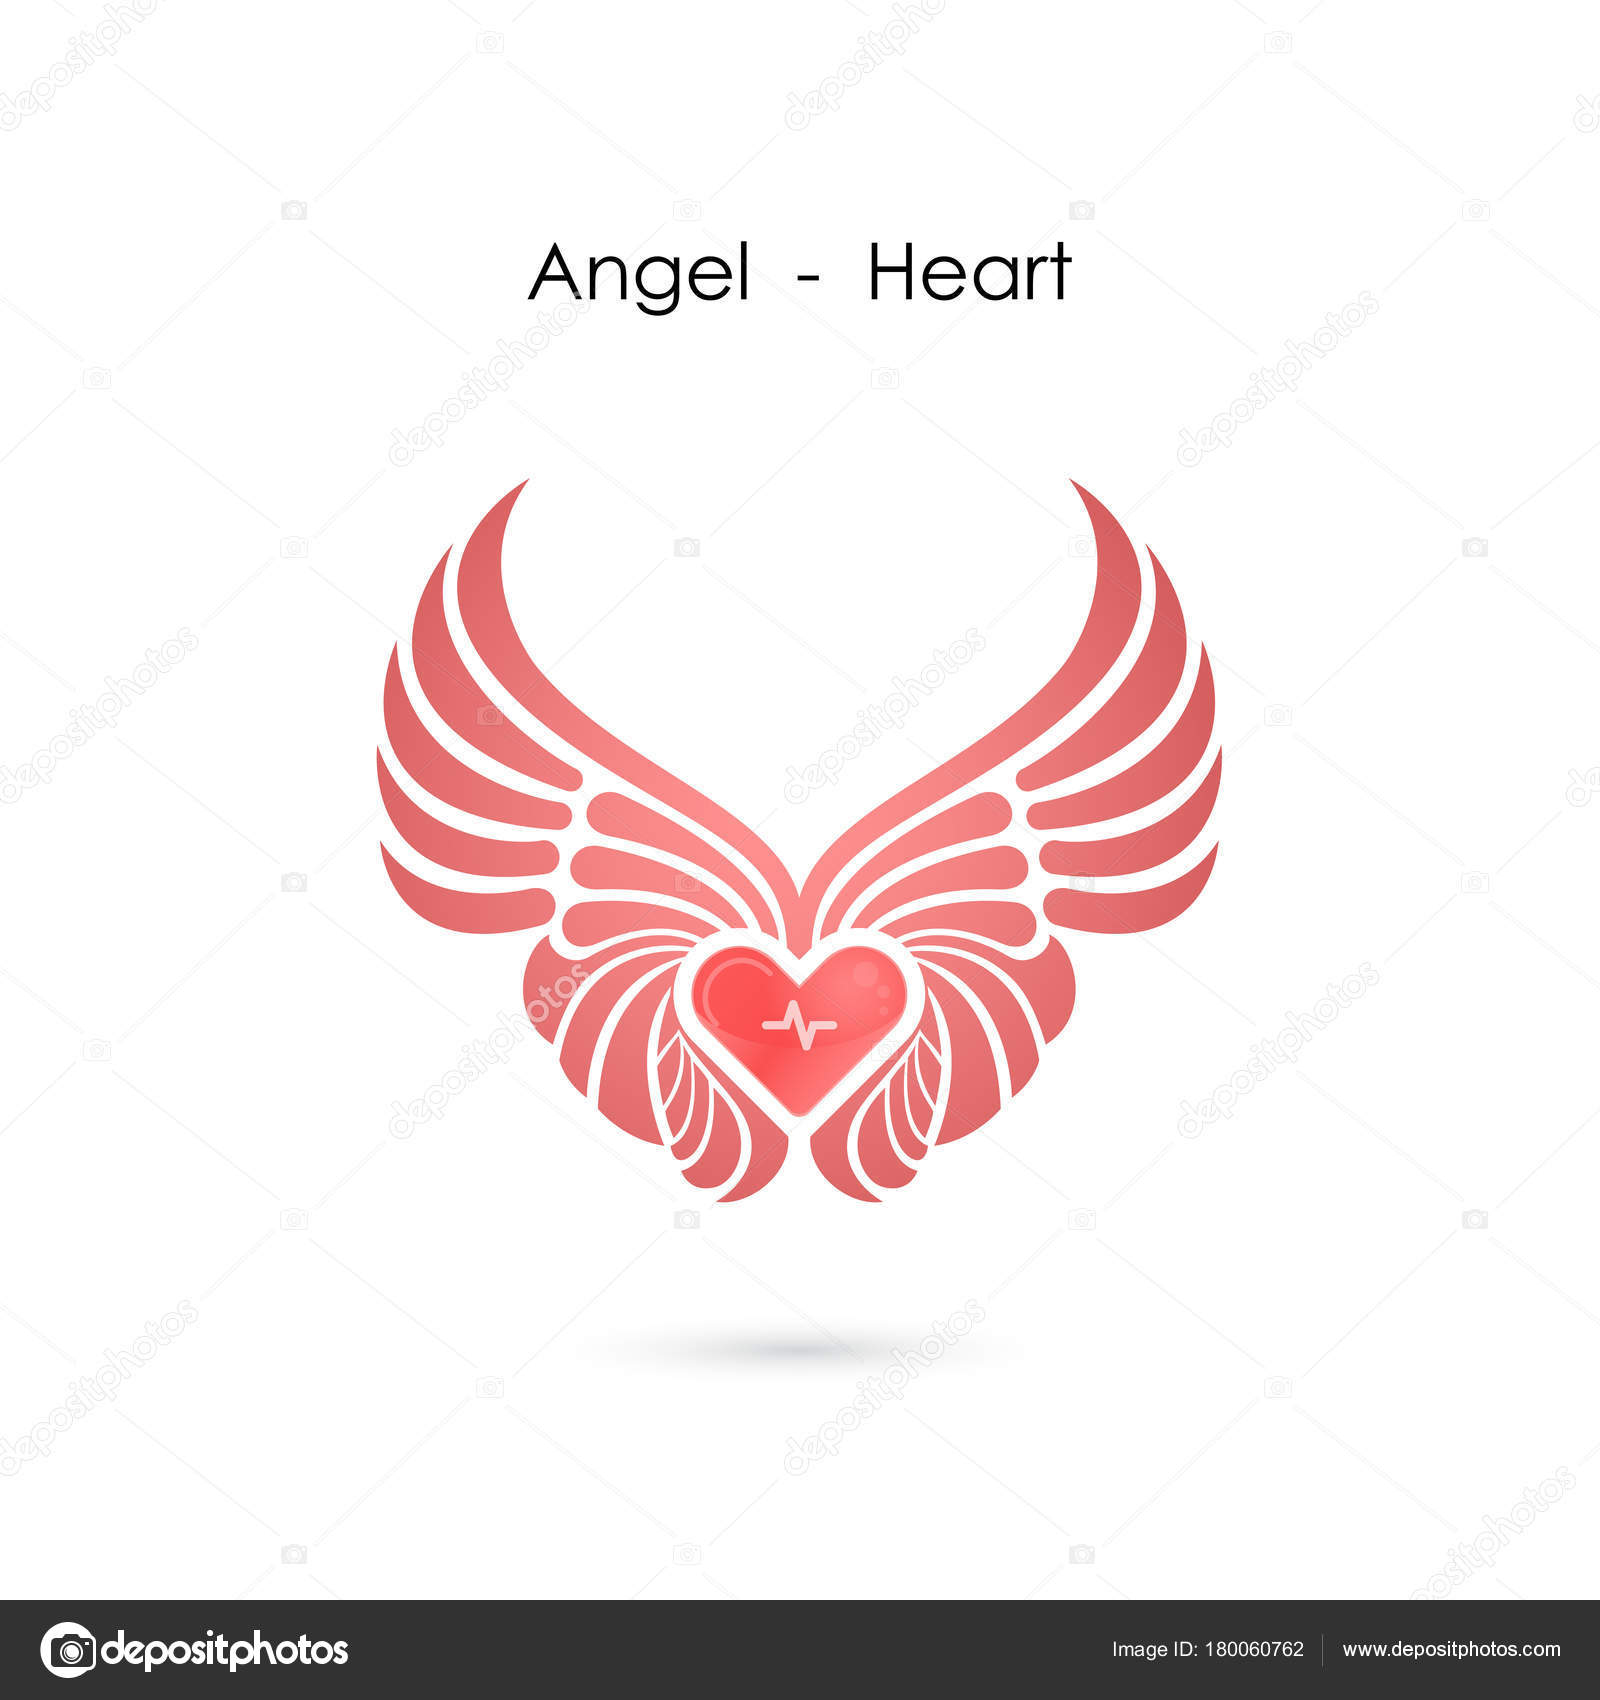 heart logo with angel wings logo design template love symbol val